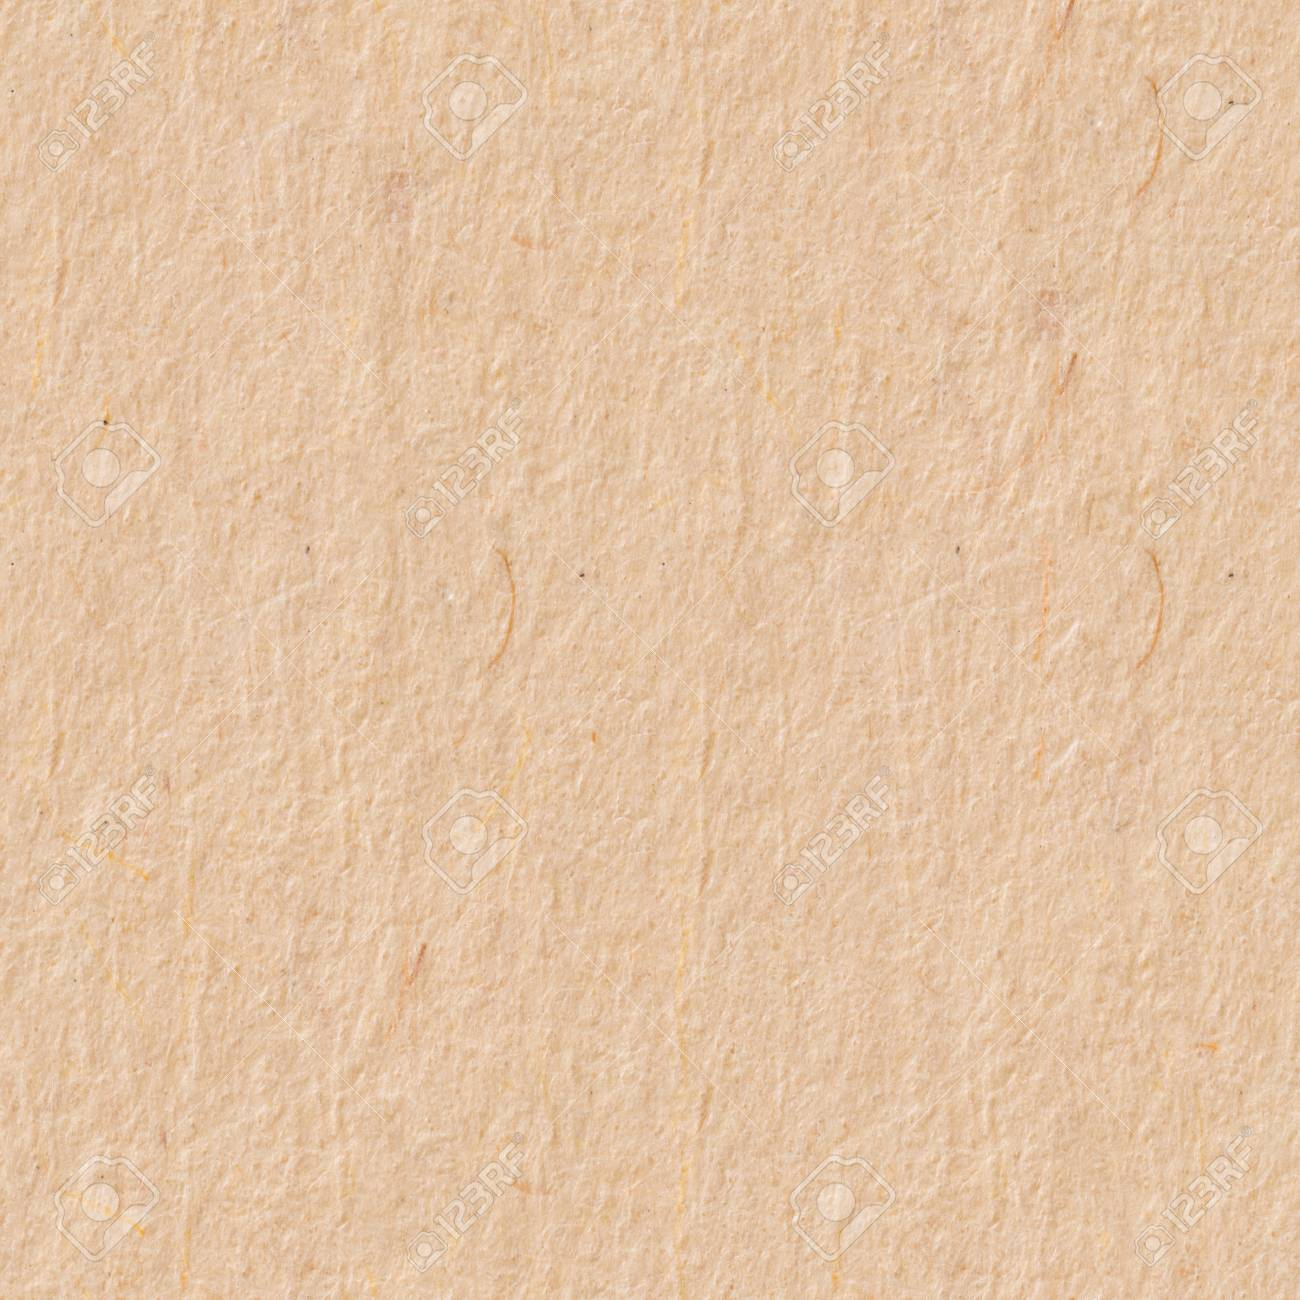 Uneven Ivory Colour Paper Texture Seamless Square Background Stock Photo Picture And Royalty Free Image Image 99119991